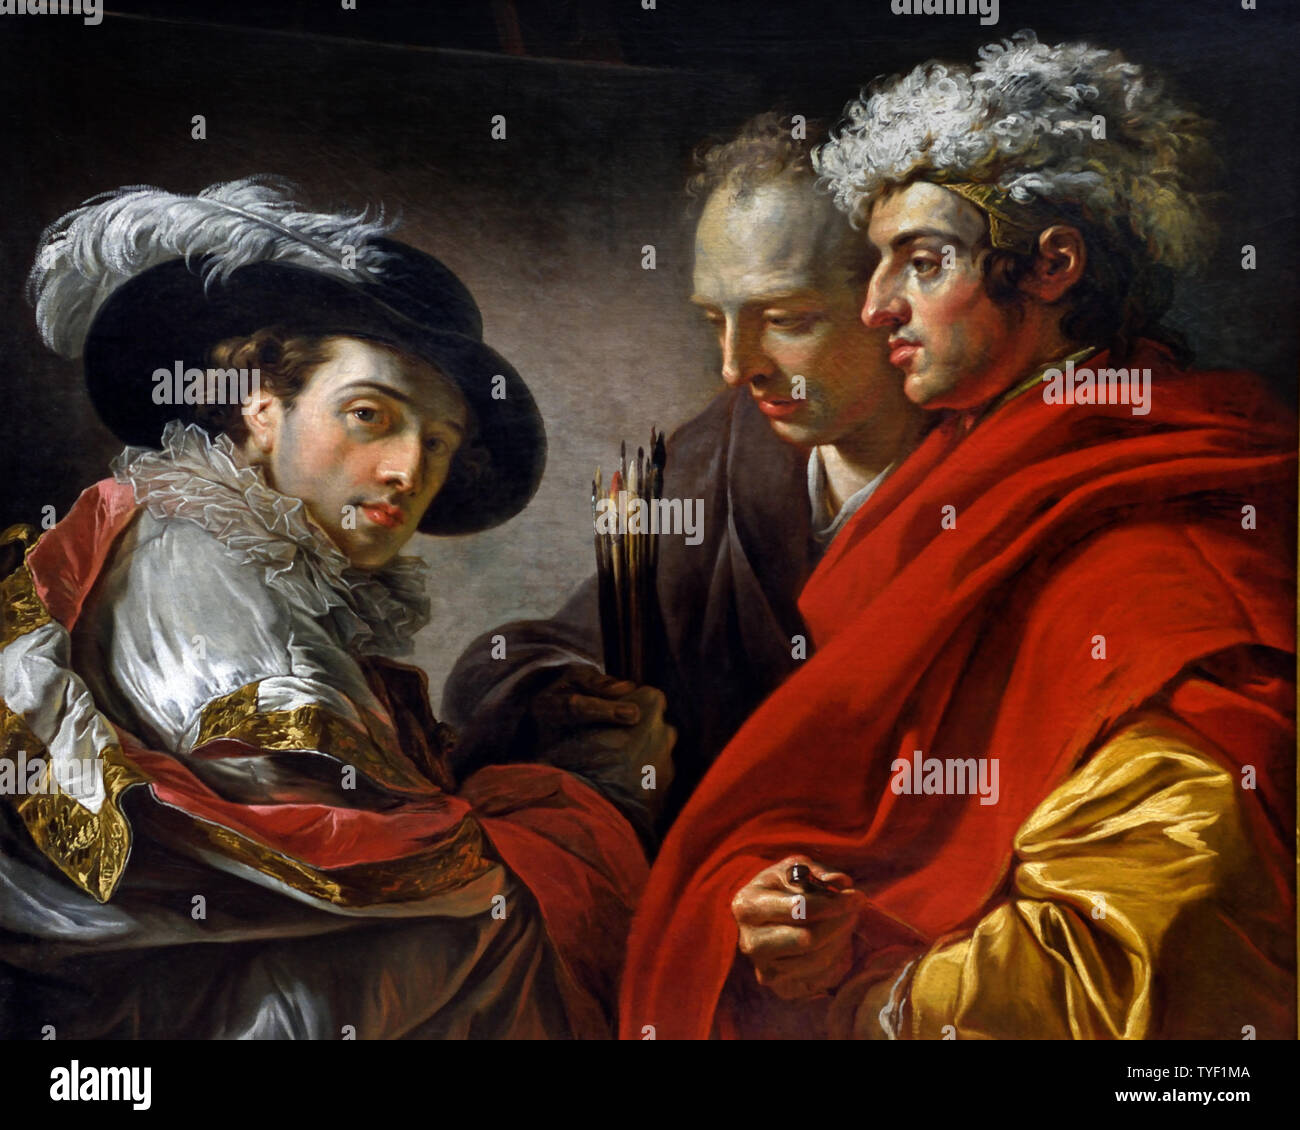 Portrait of three men 1775 by François-André VINCENT 1746 - 1816 (The artist depicted himself on the left in Spanish costume, in the spirit of Fragonard's Fantasy Figures. On the right is the architect Pierre Rousseau (1751-1826) and behind him, probably the painter Philippe-Henri Coclers (1738-1804). Stock Photo